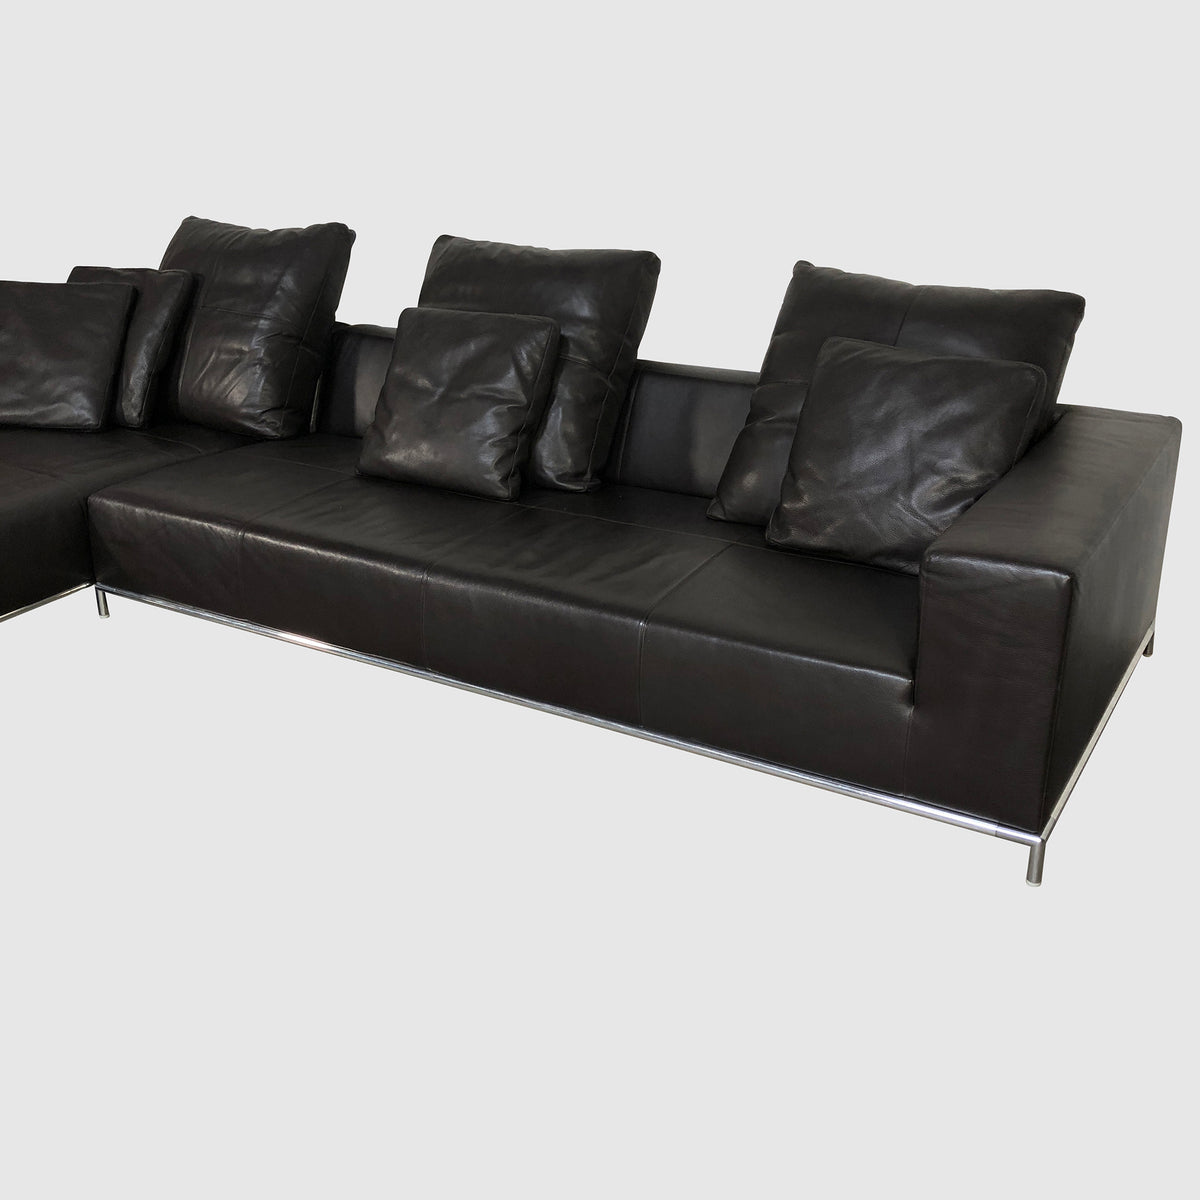 B&B Italia 'George' Dark Brown Leather Sectional by Antonio Citterio